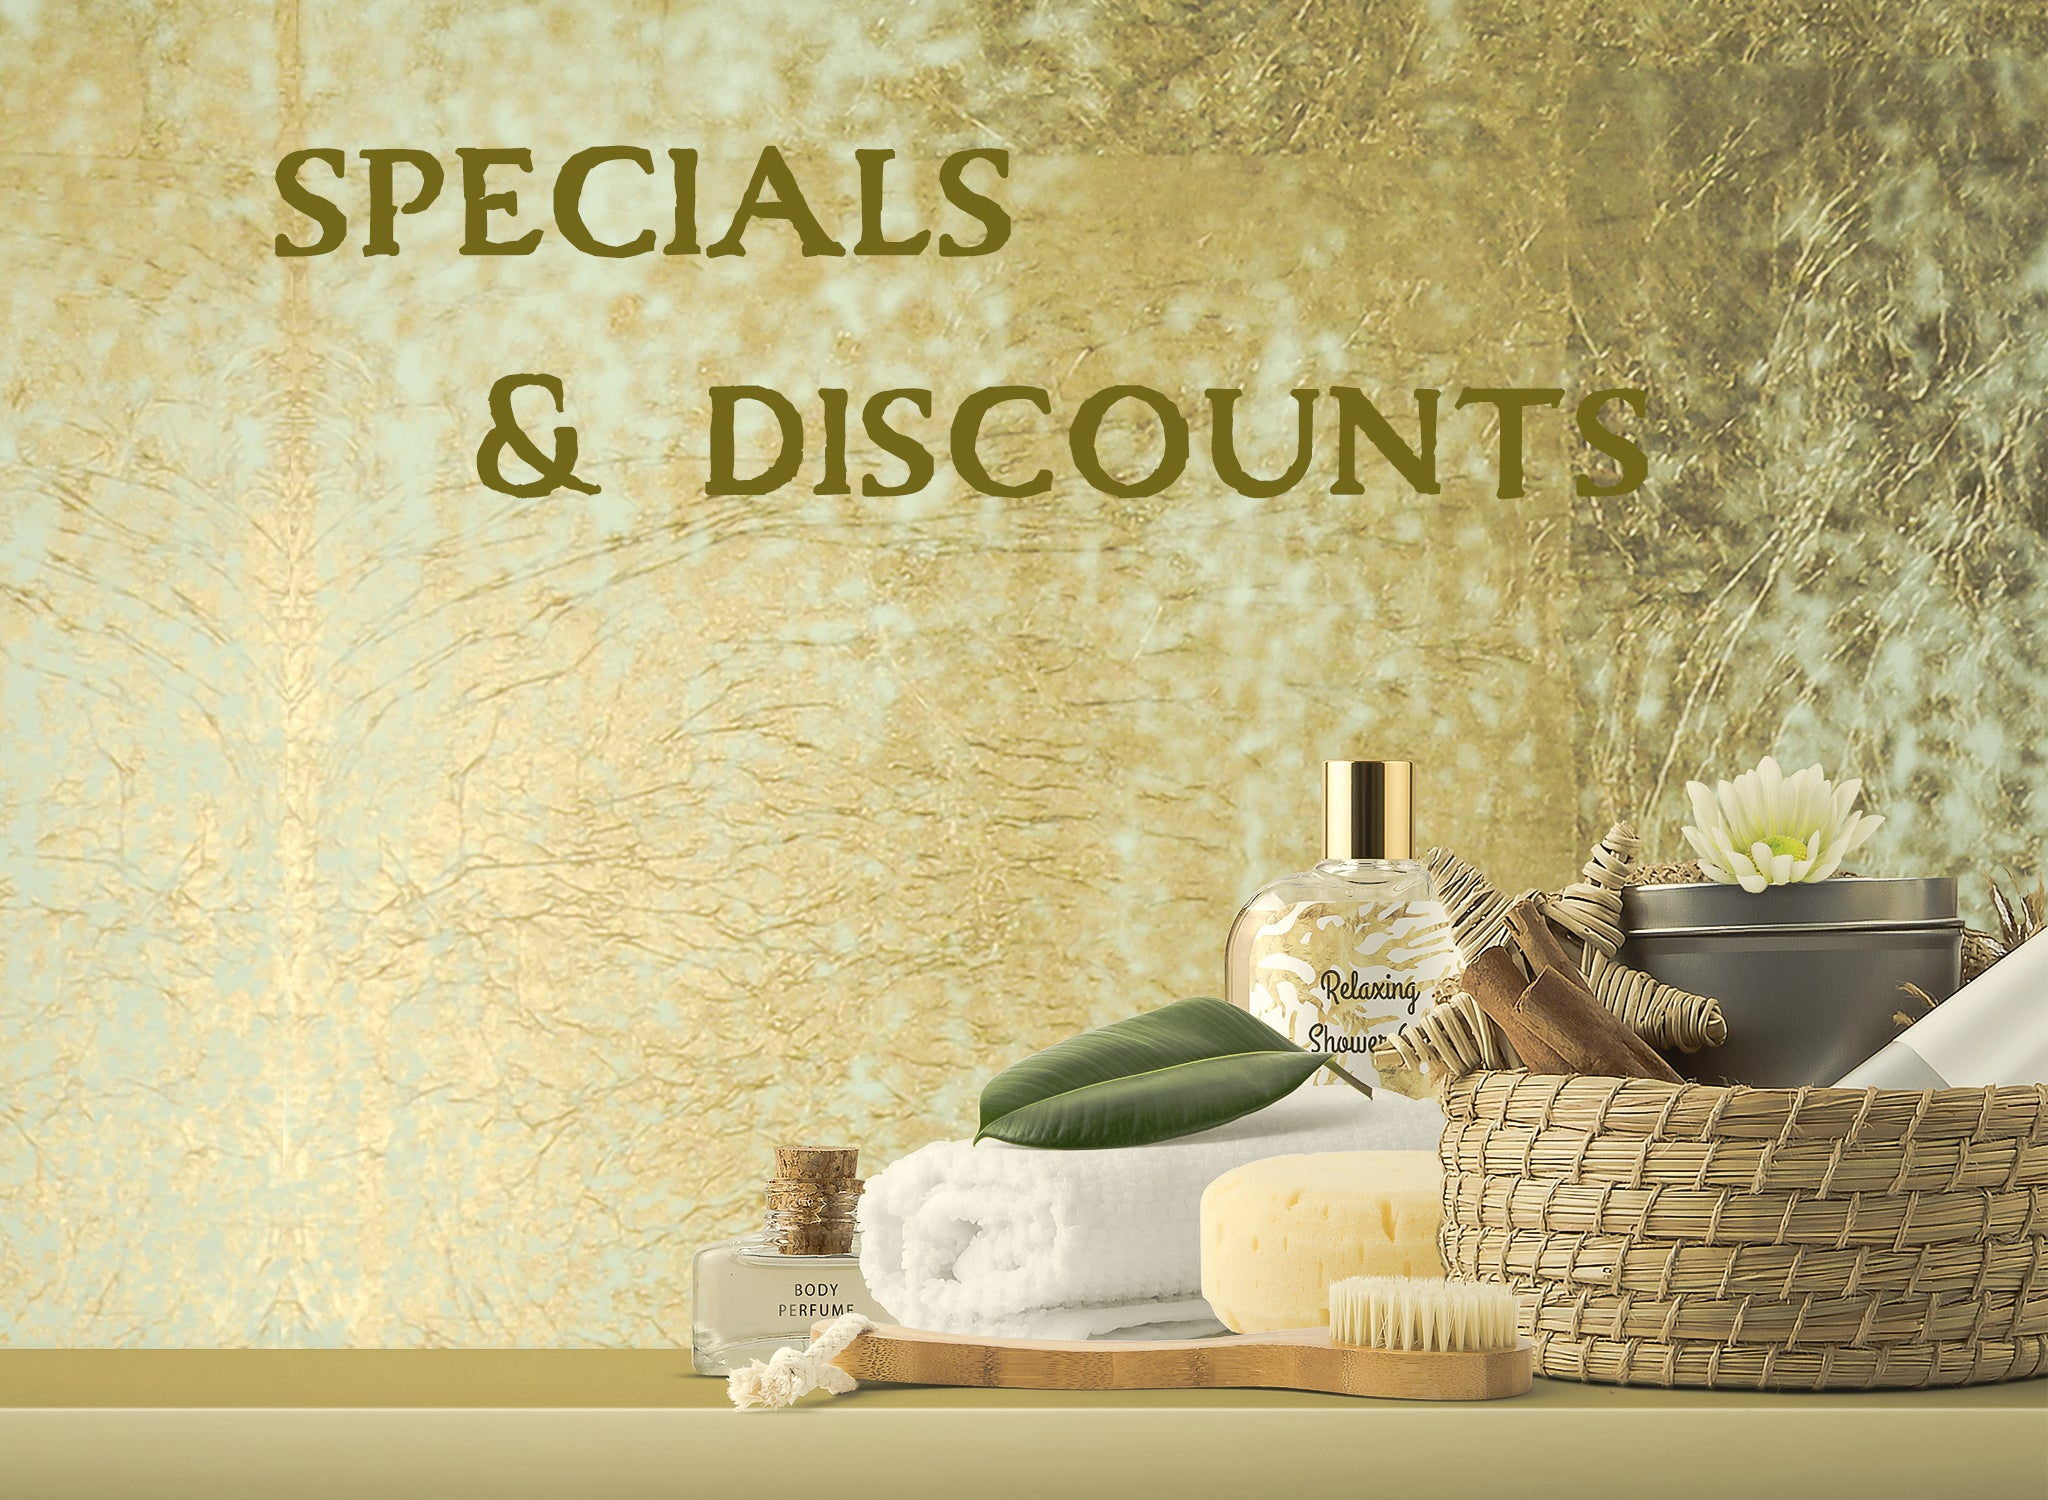 specials and discounted items at Wingsets Aromatherapy